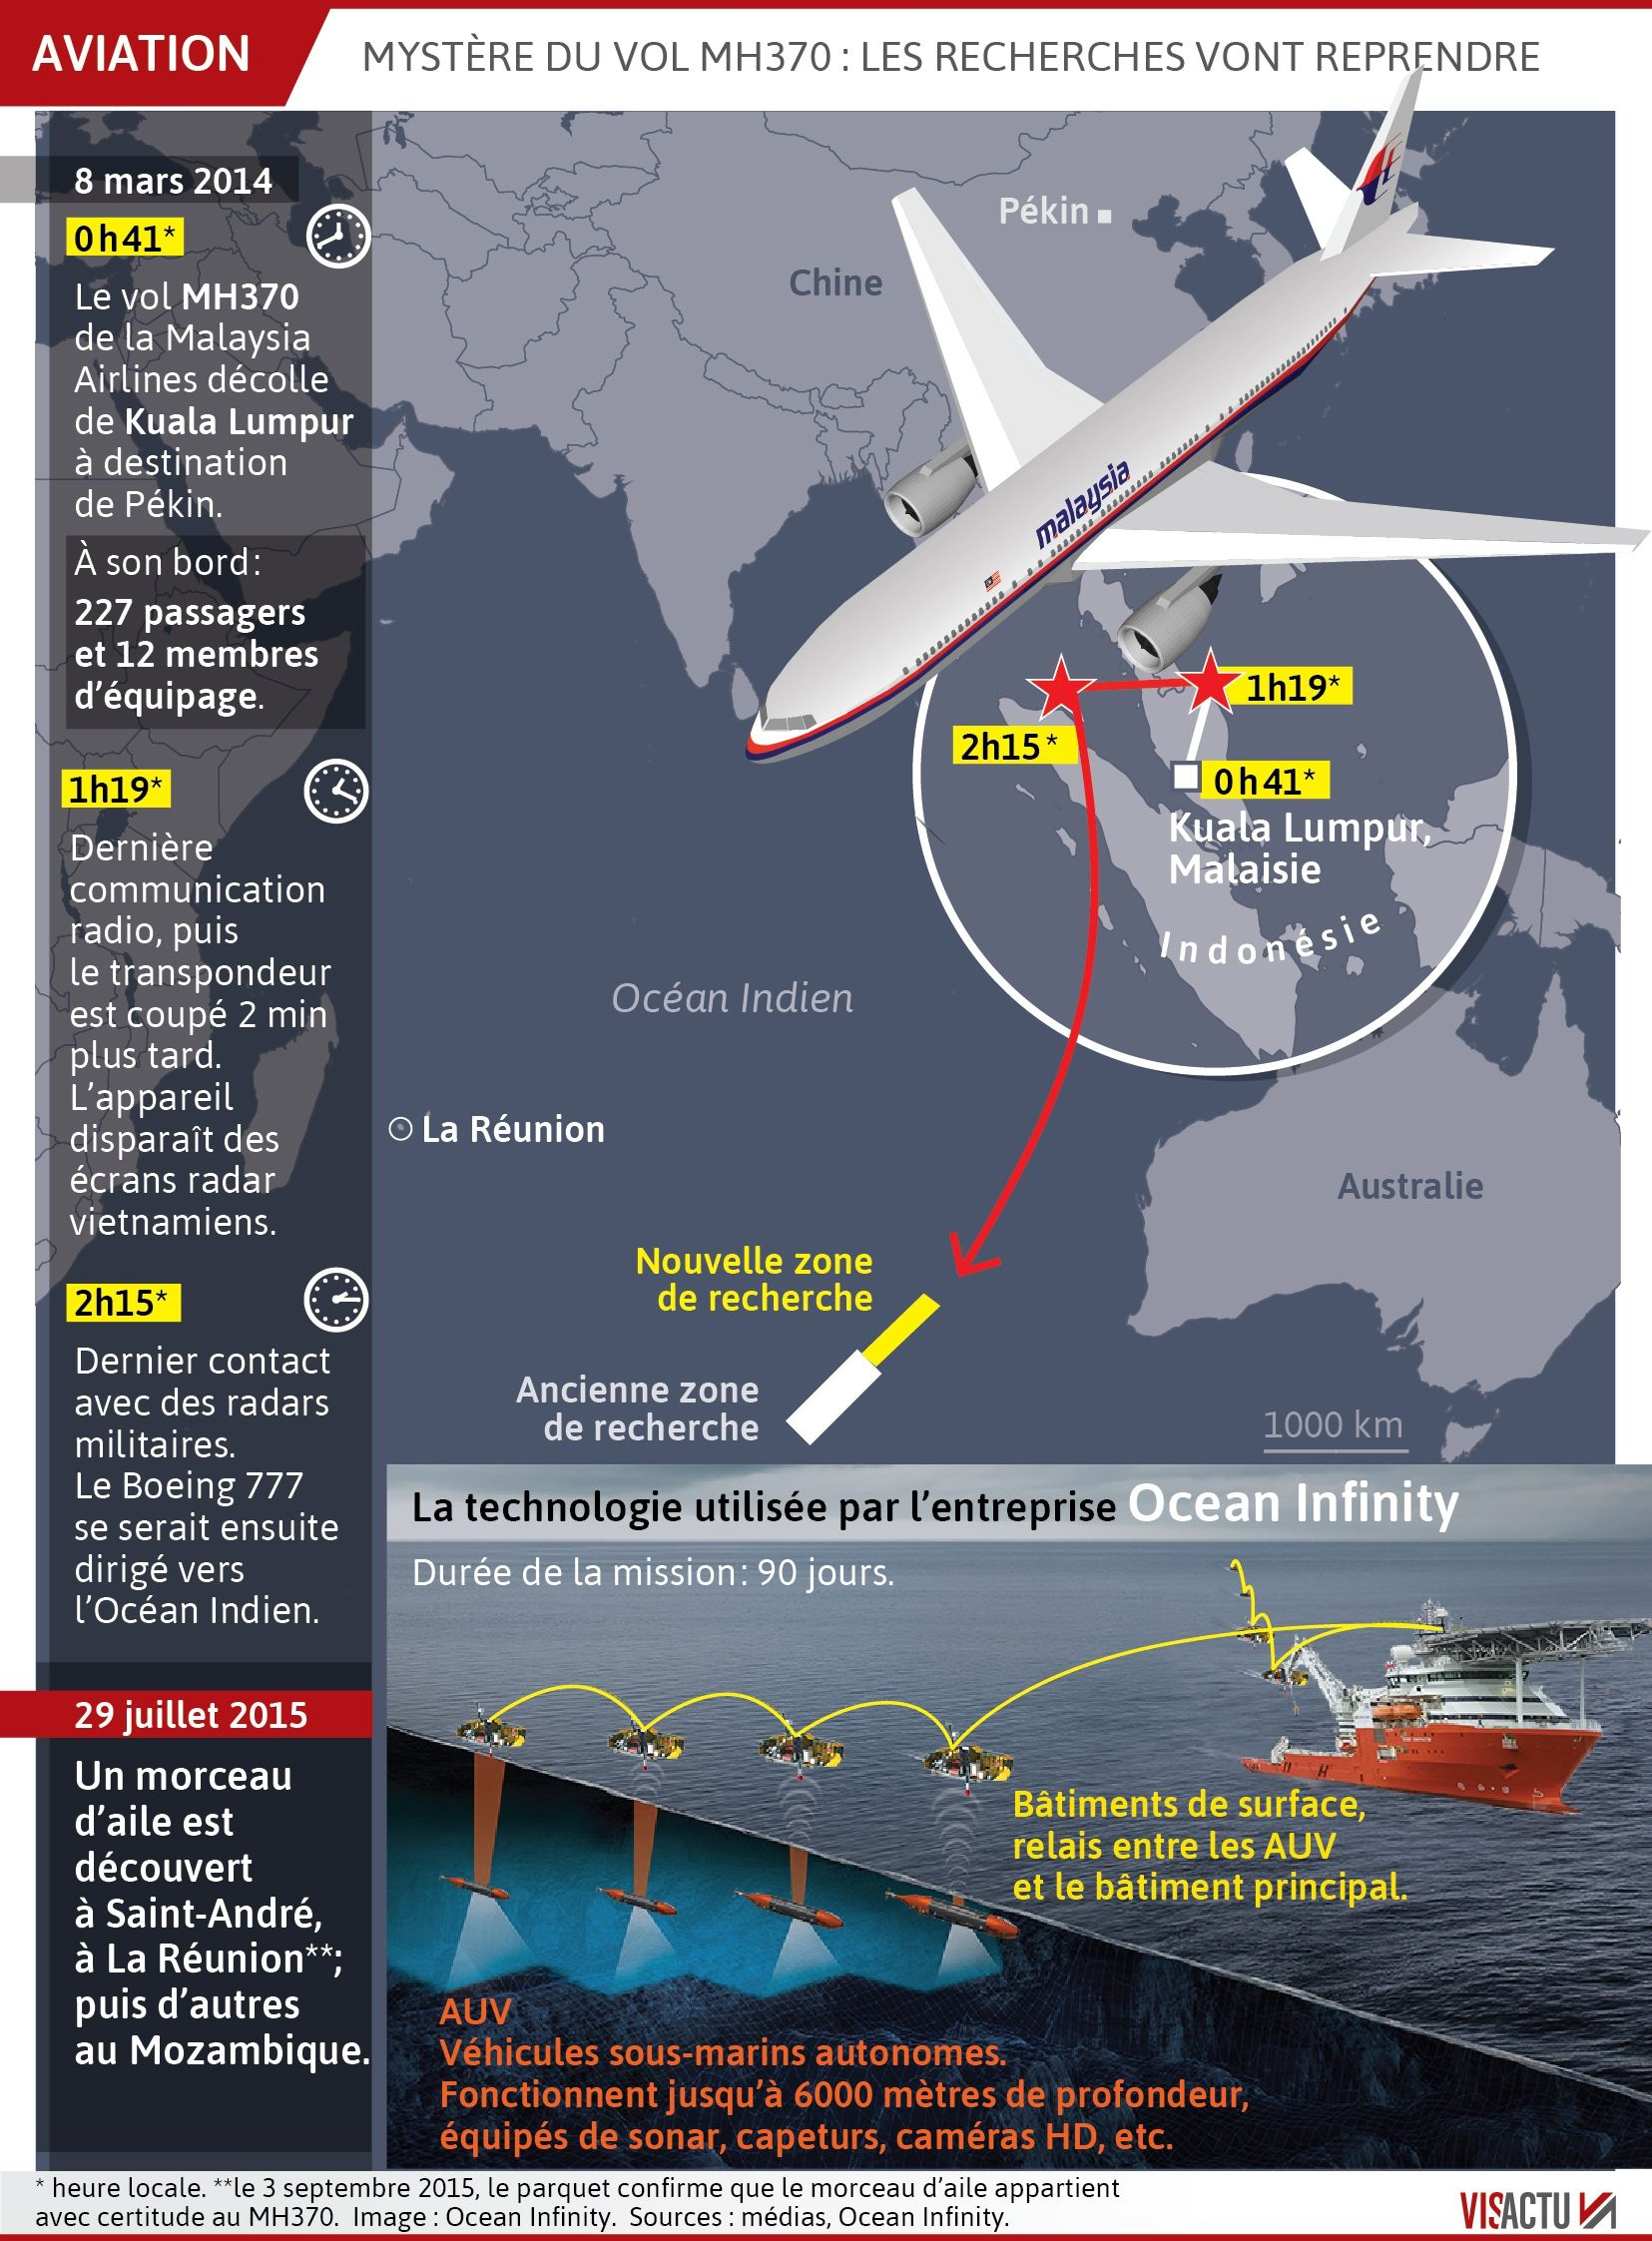 Epingle Sur Mh370 Malaysia Airlines Boeing 777